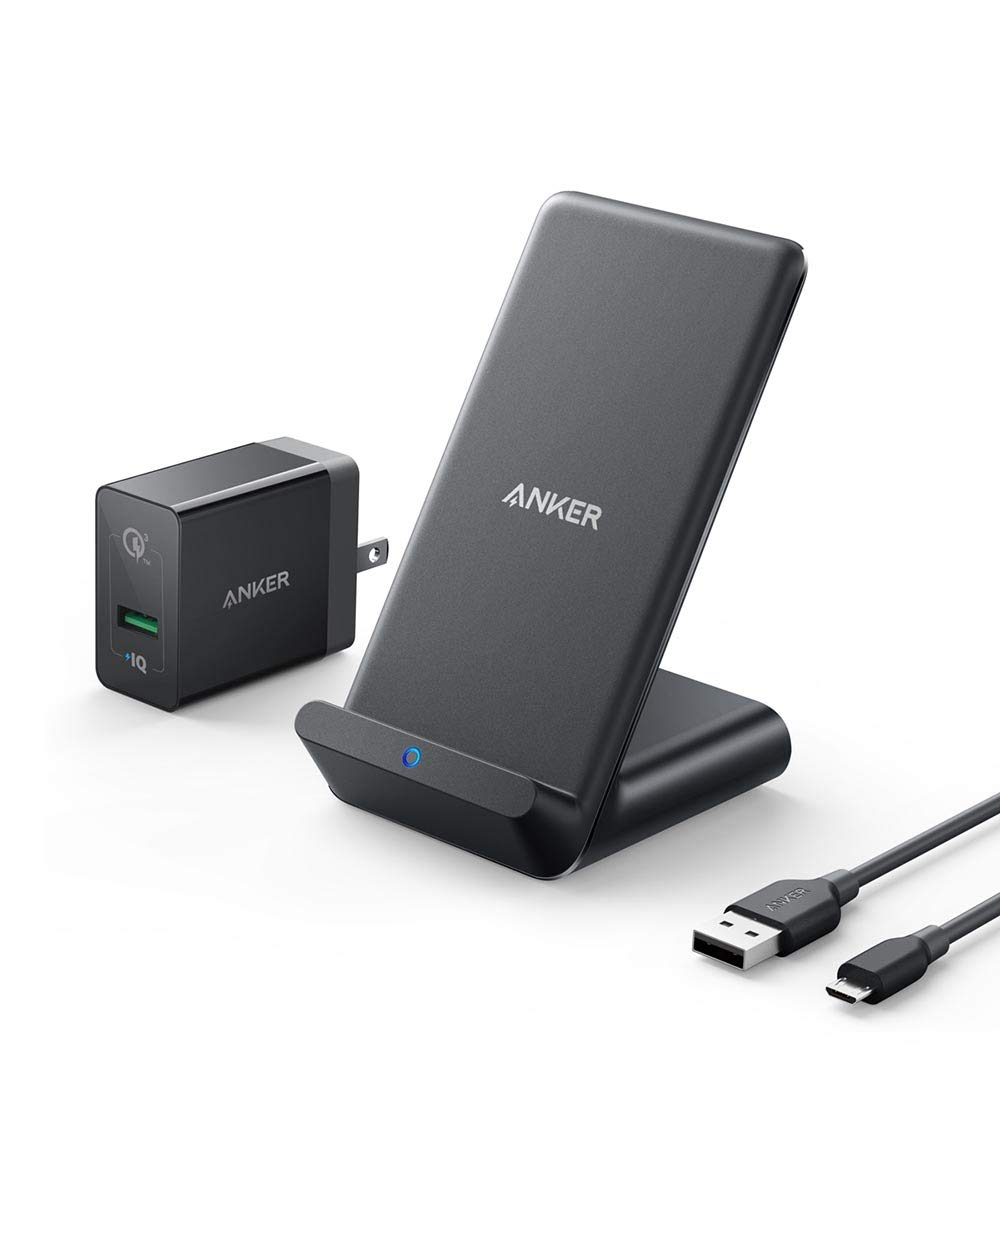 Anker PowerWave 7.5 Fast Wireless Charging Stand with Internal Cooling Fan, Qi-Certified, 7.5W Compatible iPhone XR/XS Max/XS/X/8/8 Plus, 10W Charges Galaxy S9/S9+/S8, LG G7(with Quick Charge Adapter)